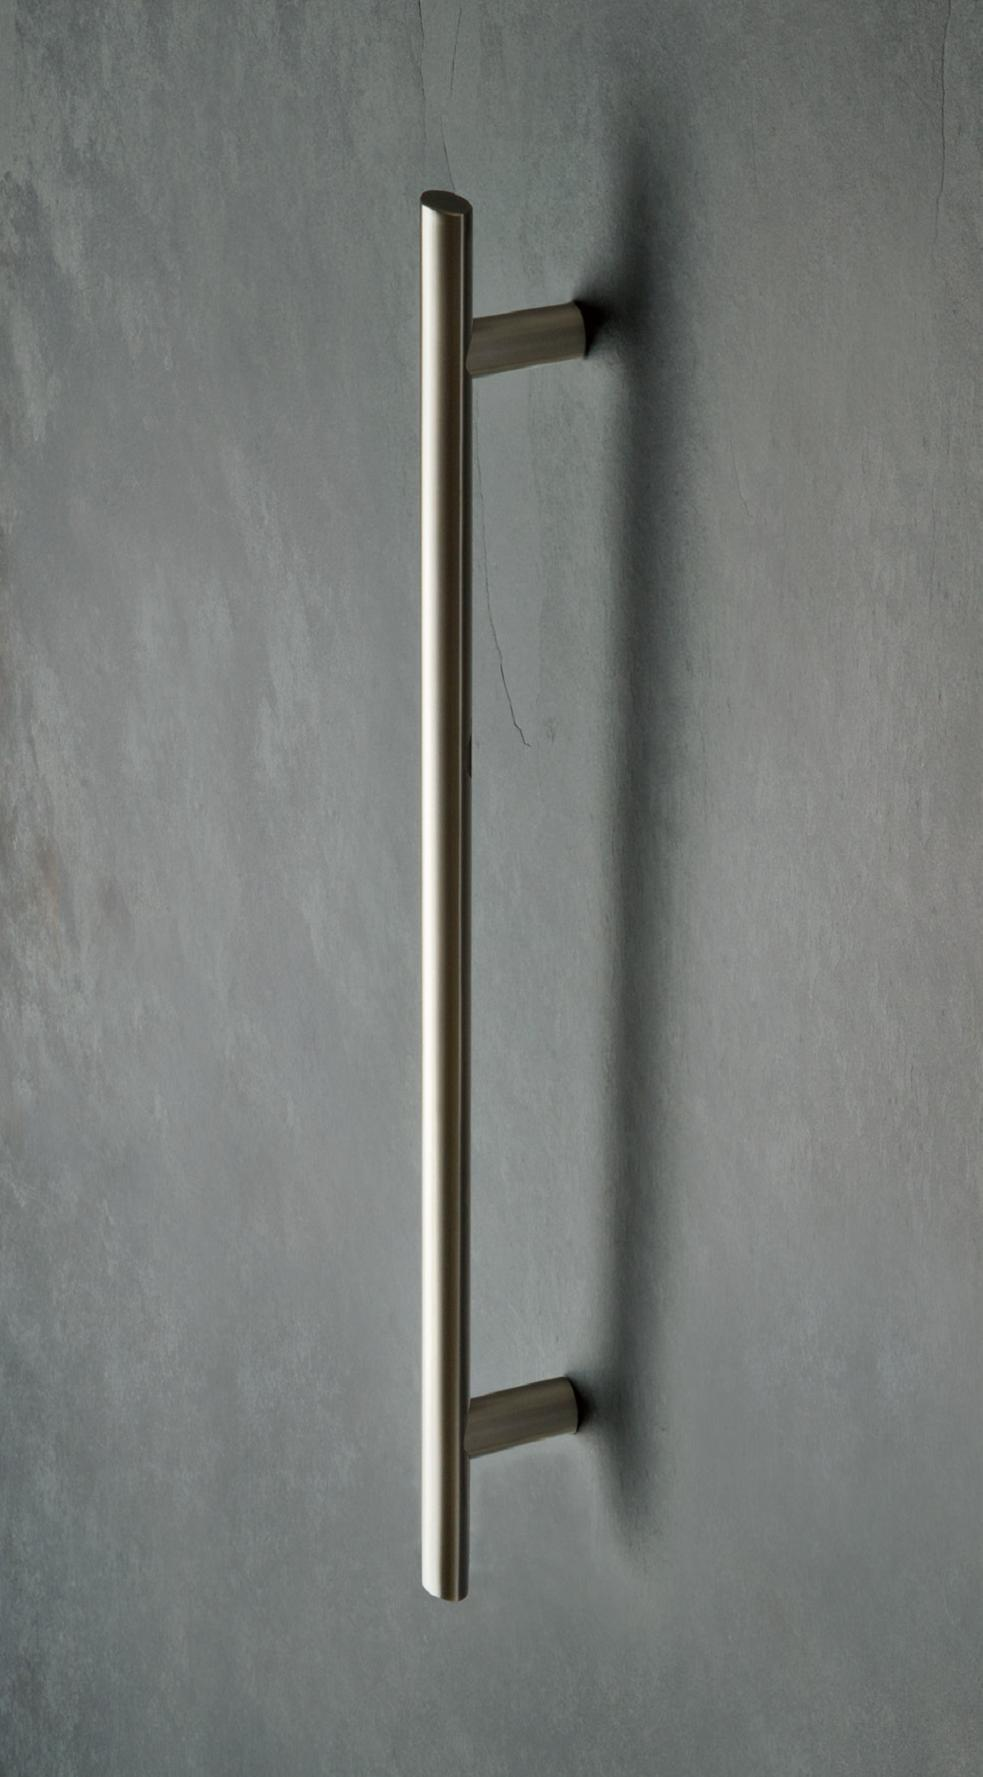 ASPH007 / 107 - ASSA ABLOY Pull Handle